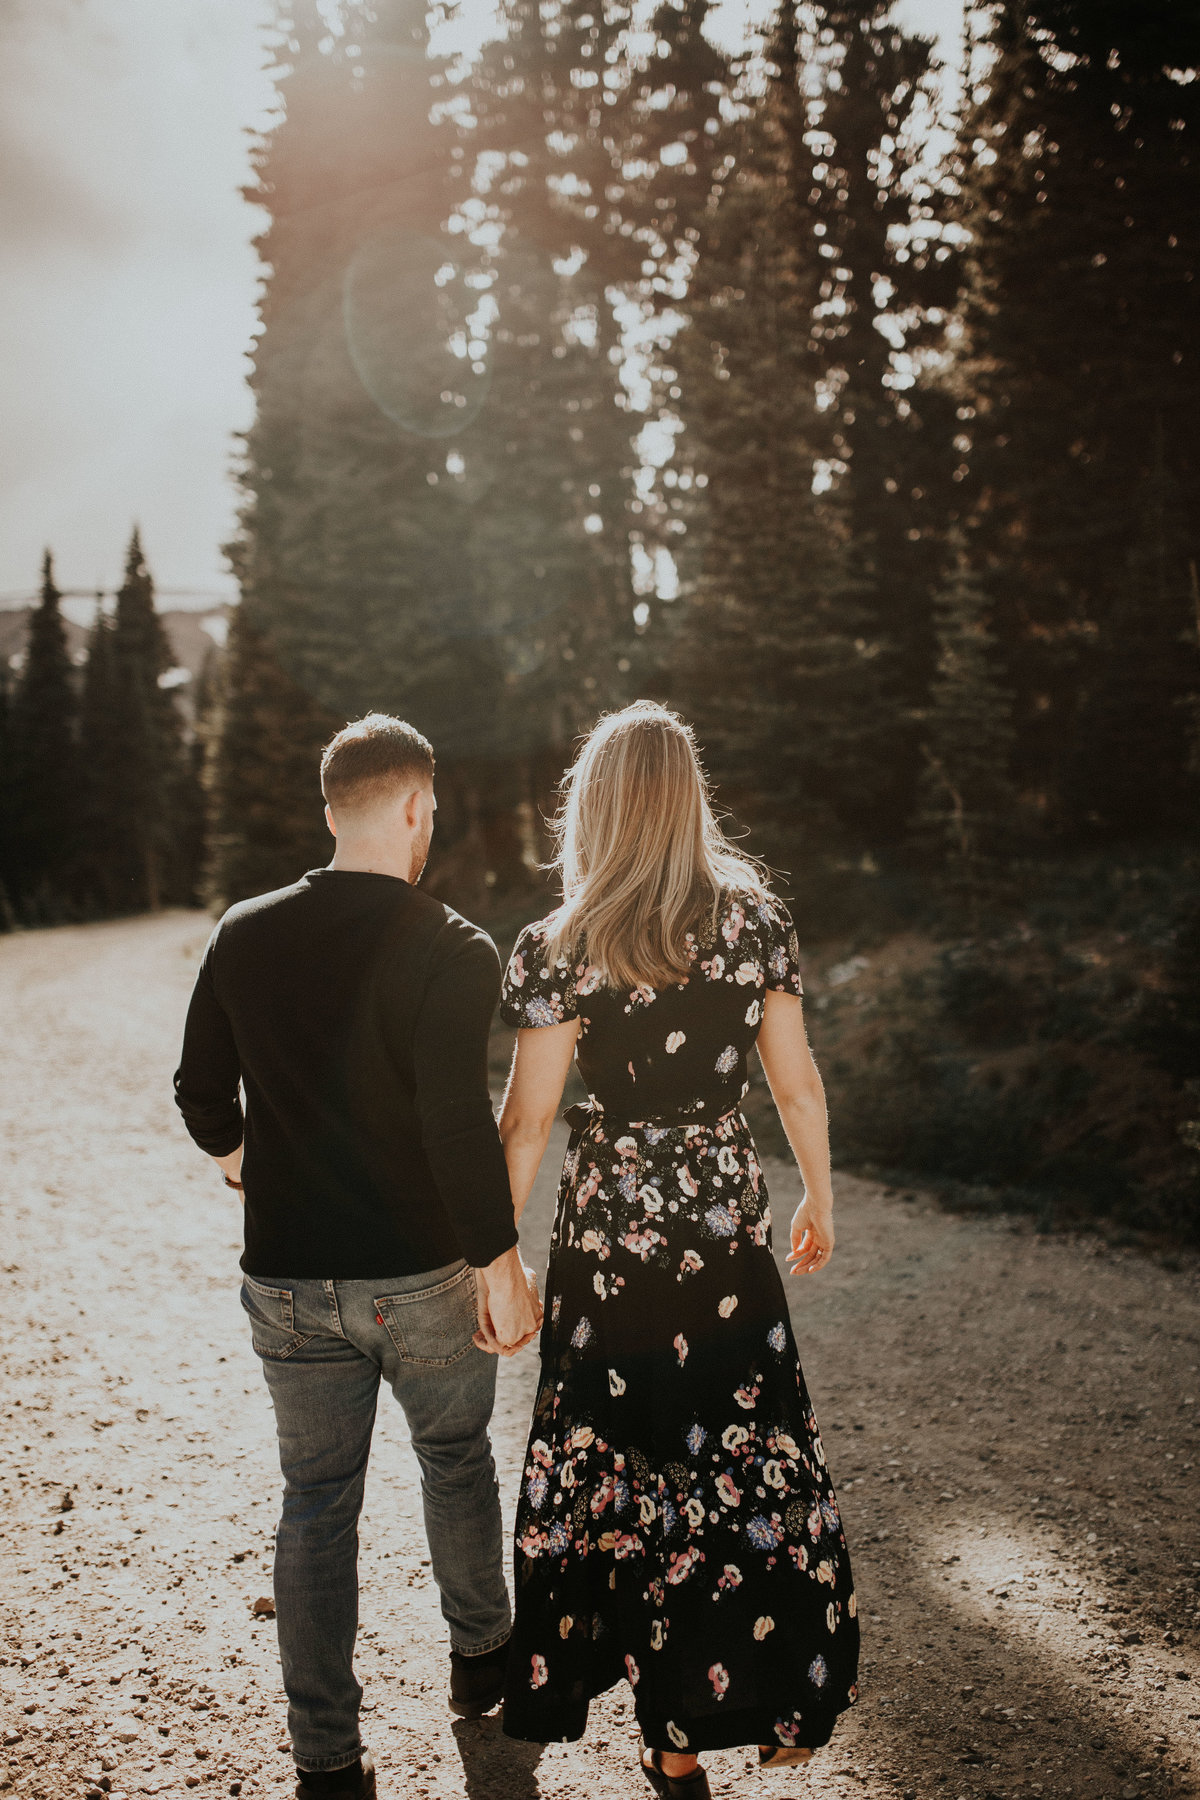 Marnie_Cornell_Photography_Engagement_Mount_Rainier_RK-19